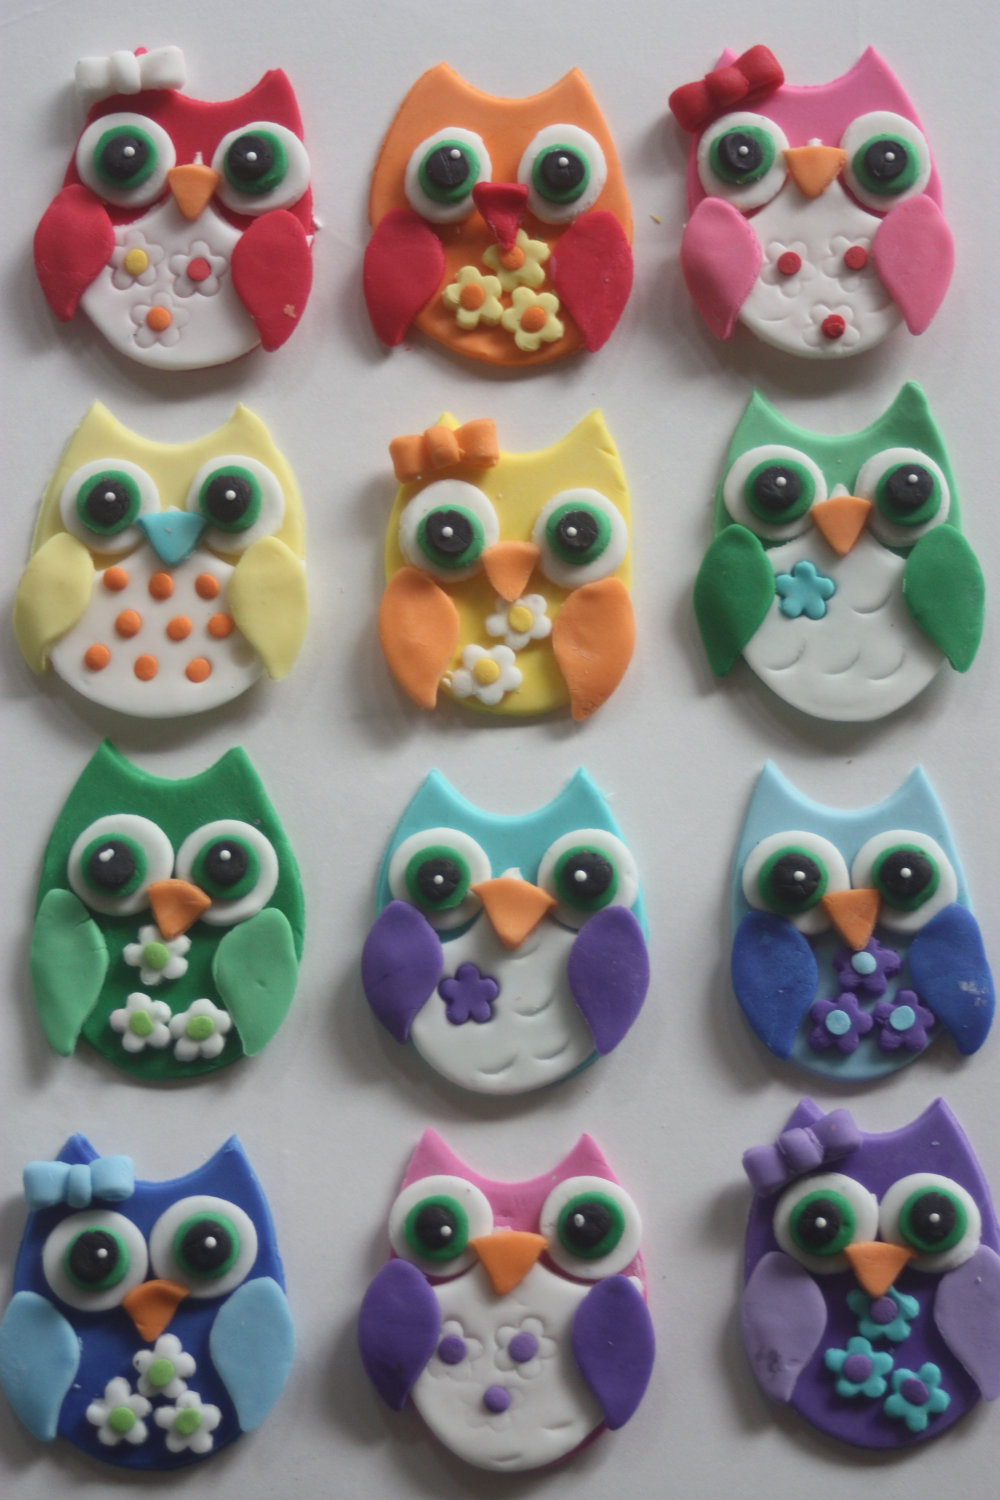 Foodista | These Owl Cupcake Toppers Are a Hoot